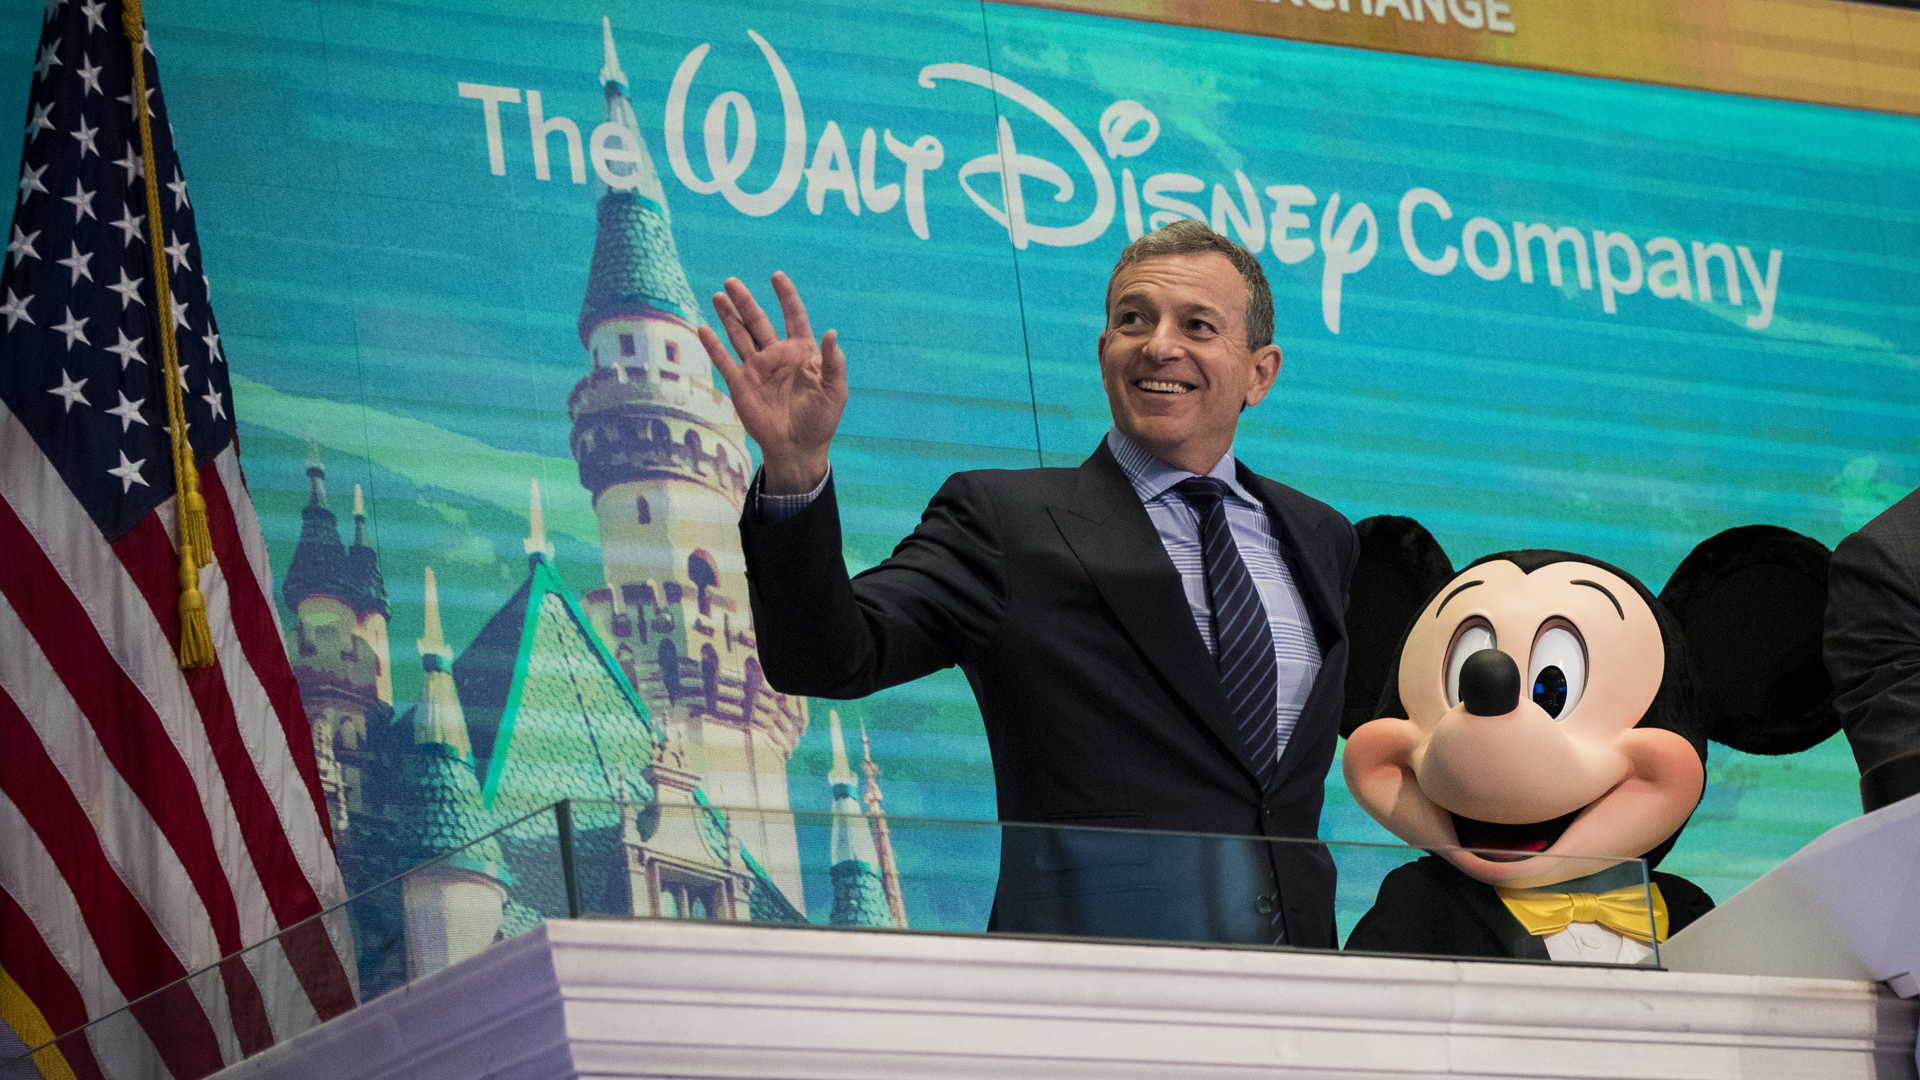 Walt Disney Company CEO Bob Iger and Mickey Mouse look on before ringing the opening bell at the New York Stock Exchange (NYSE), November 27, 2017 in New York City. (Drew Angerer/Getty Images)